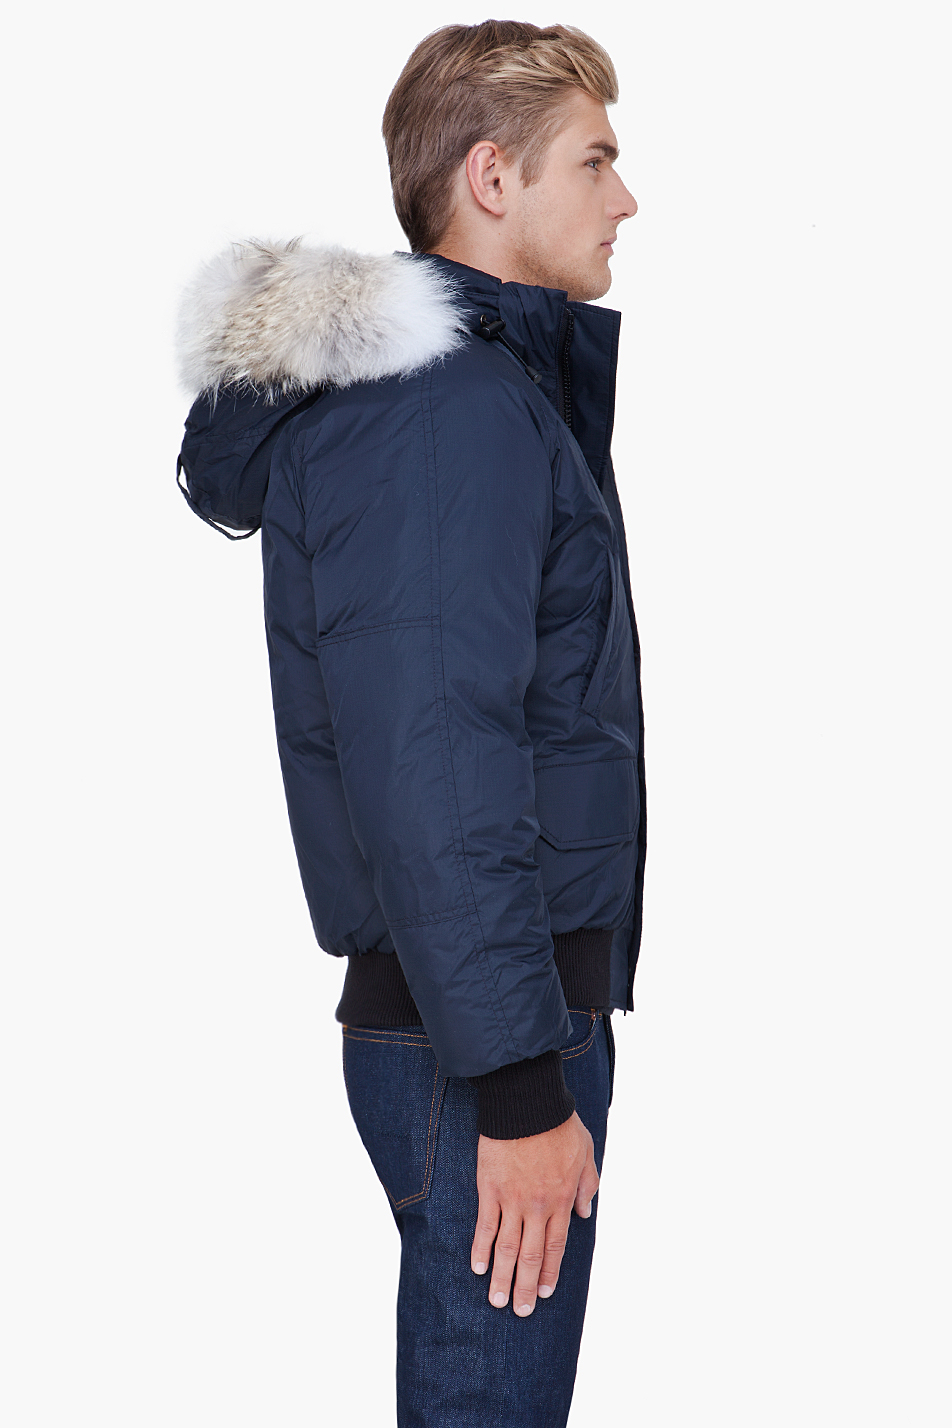 Canada Goose Navy Blue Jacket